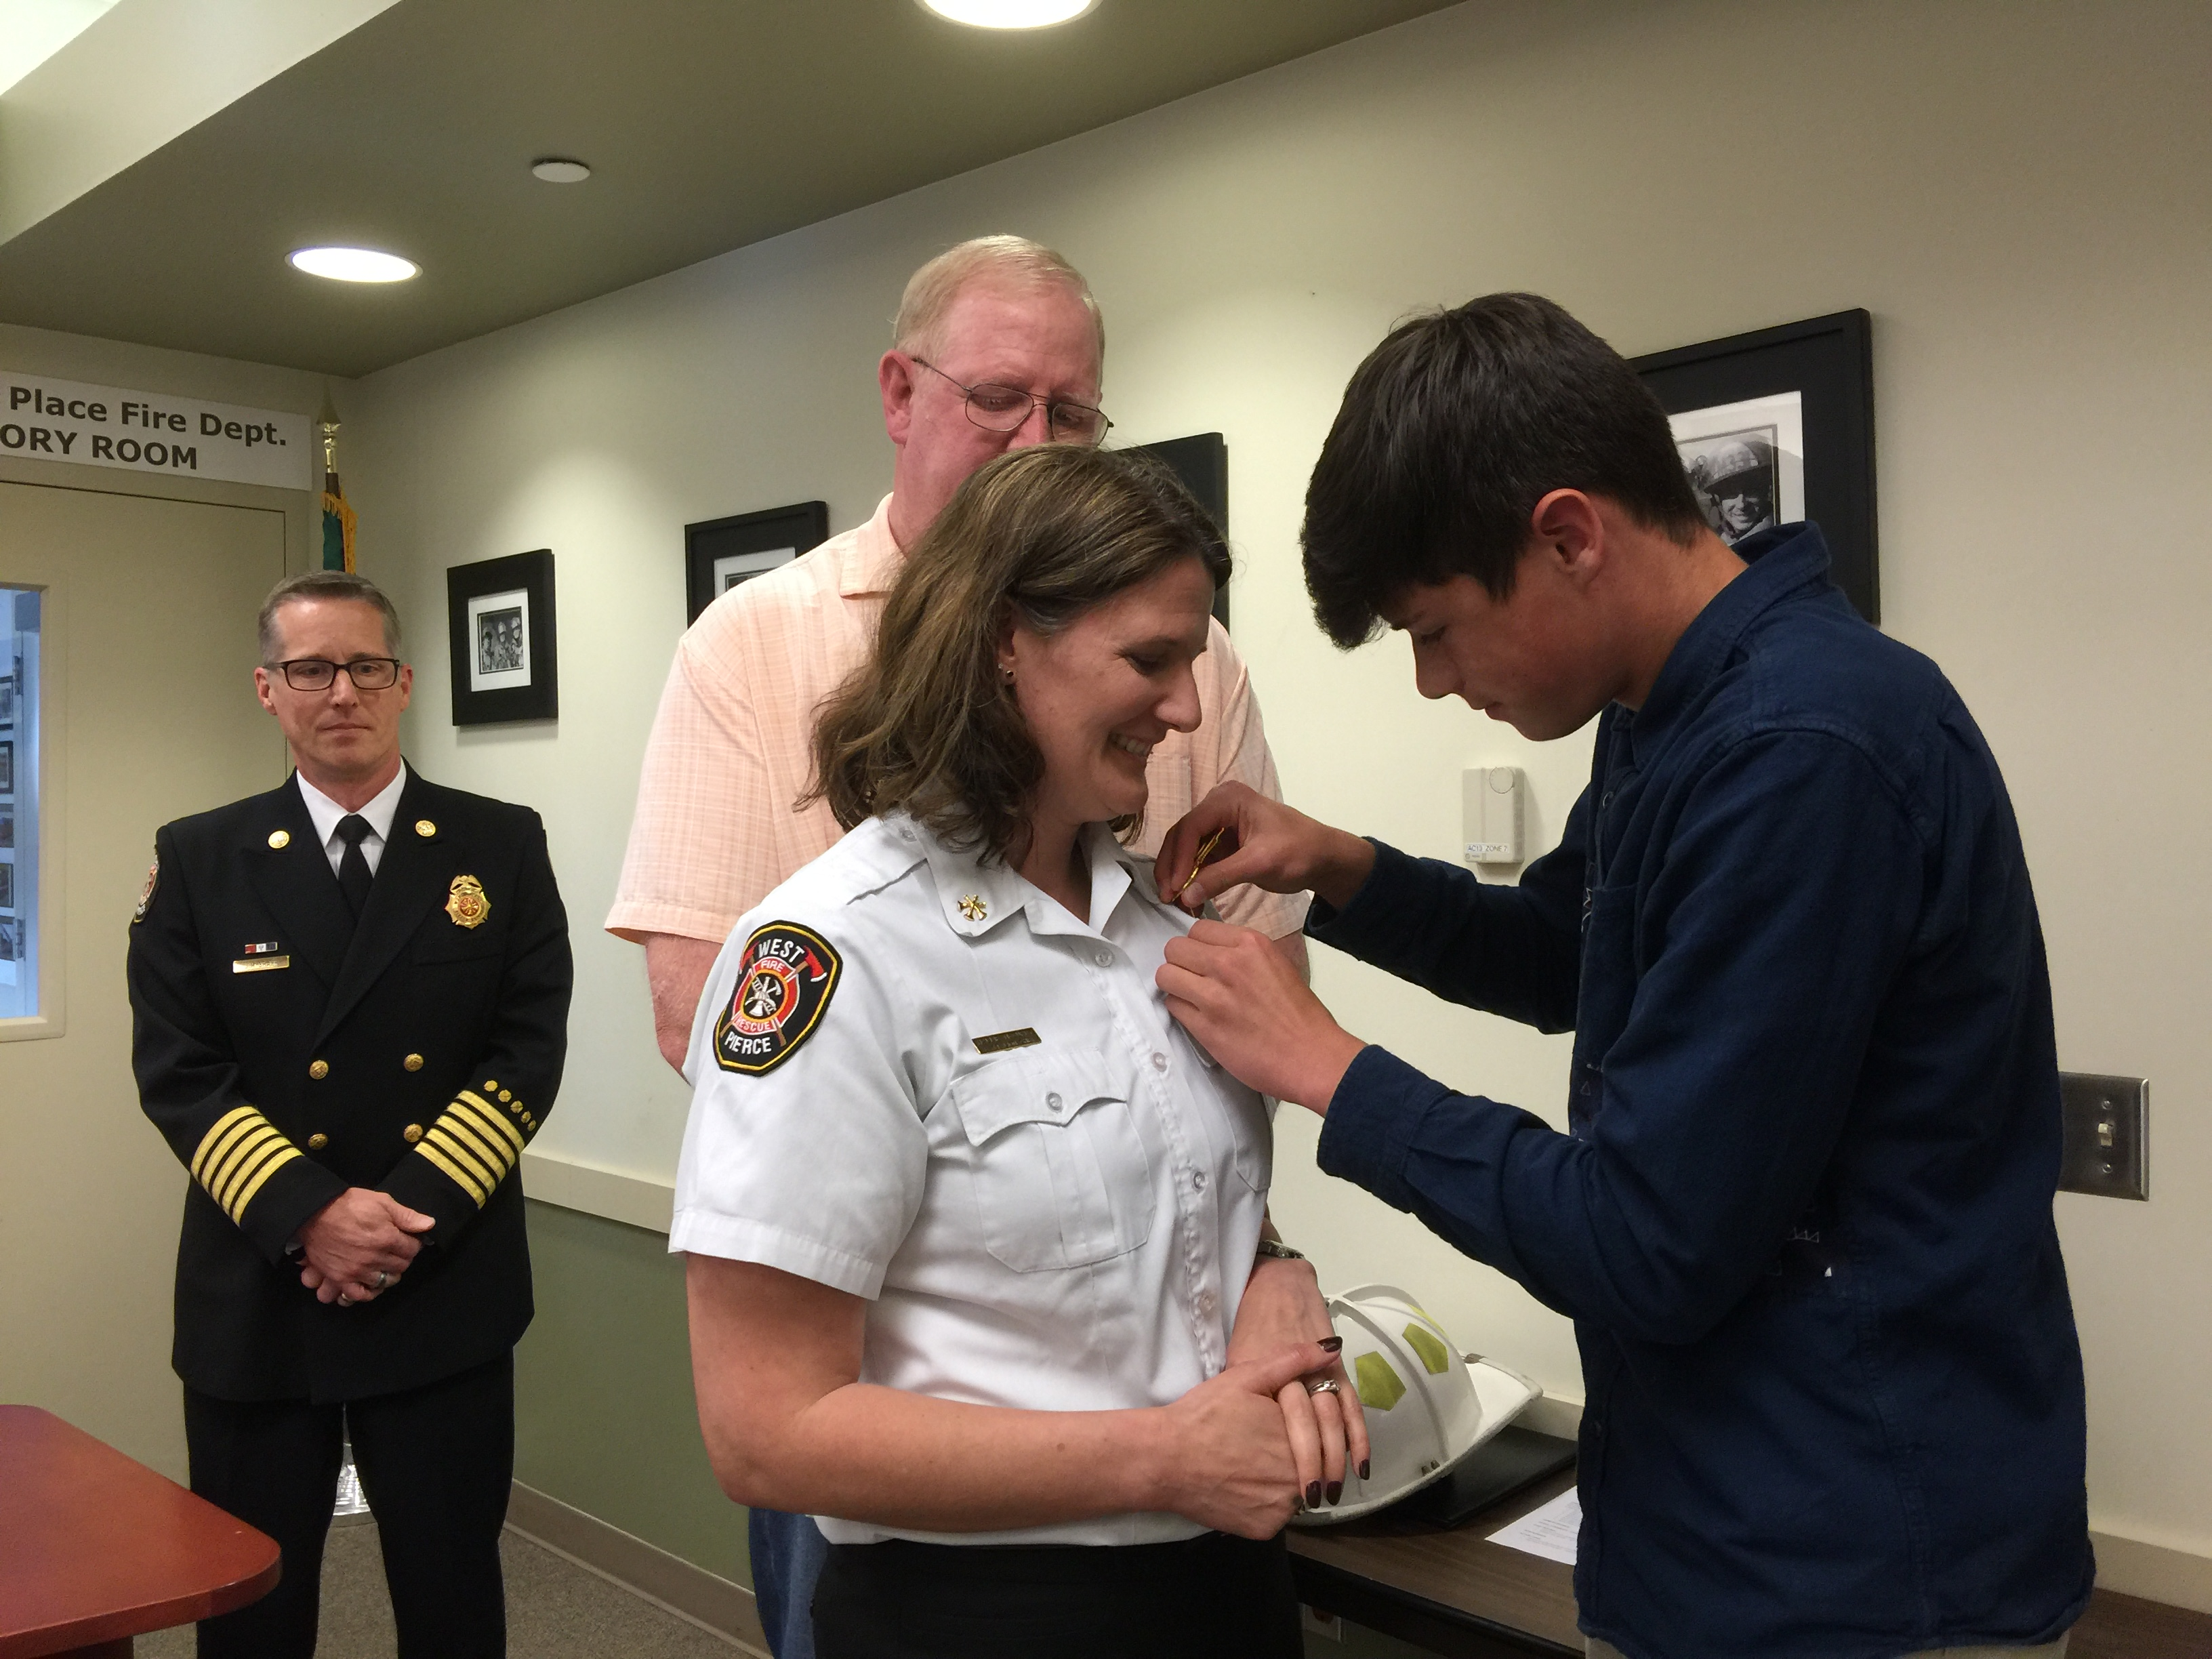 Citizen Life Safety Award, New Assistant Chief, and EMS Week